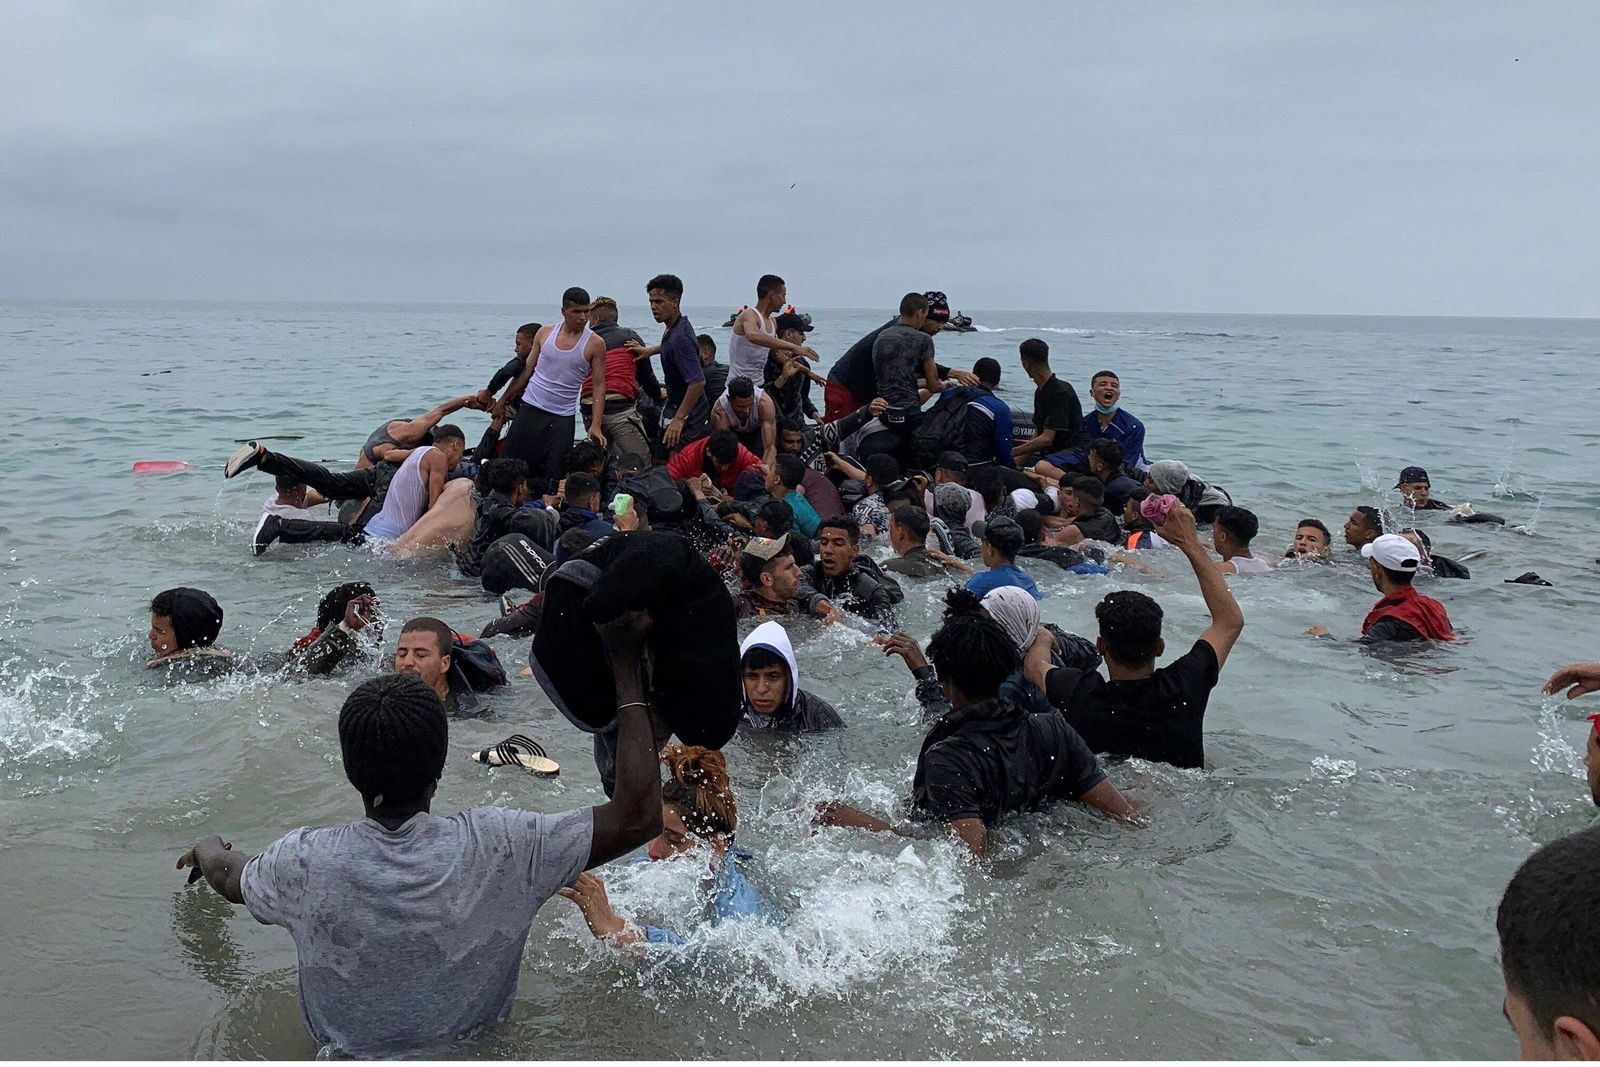 Migrants manage to grab a boat of the Moroccan authorities near the coast of Fnideq (Morocco) in an attempt to cross ove